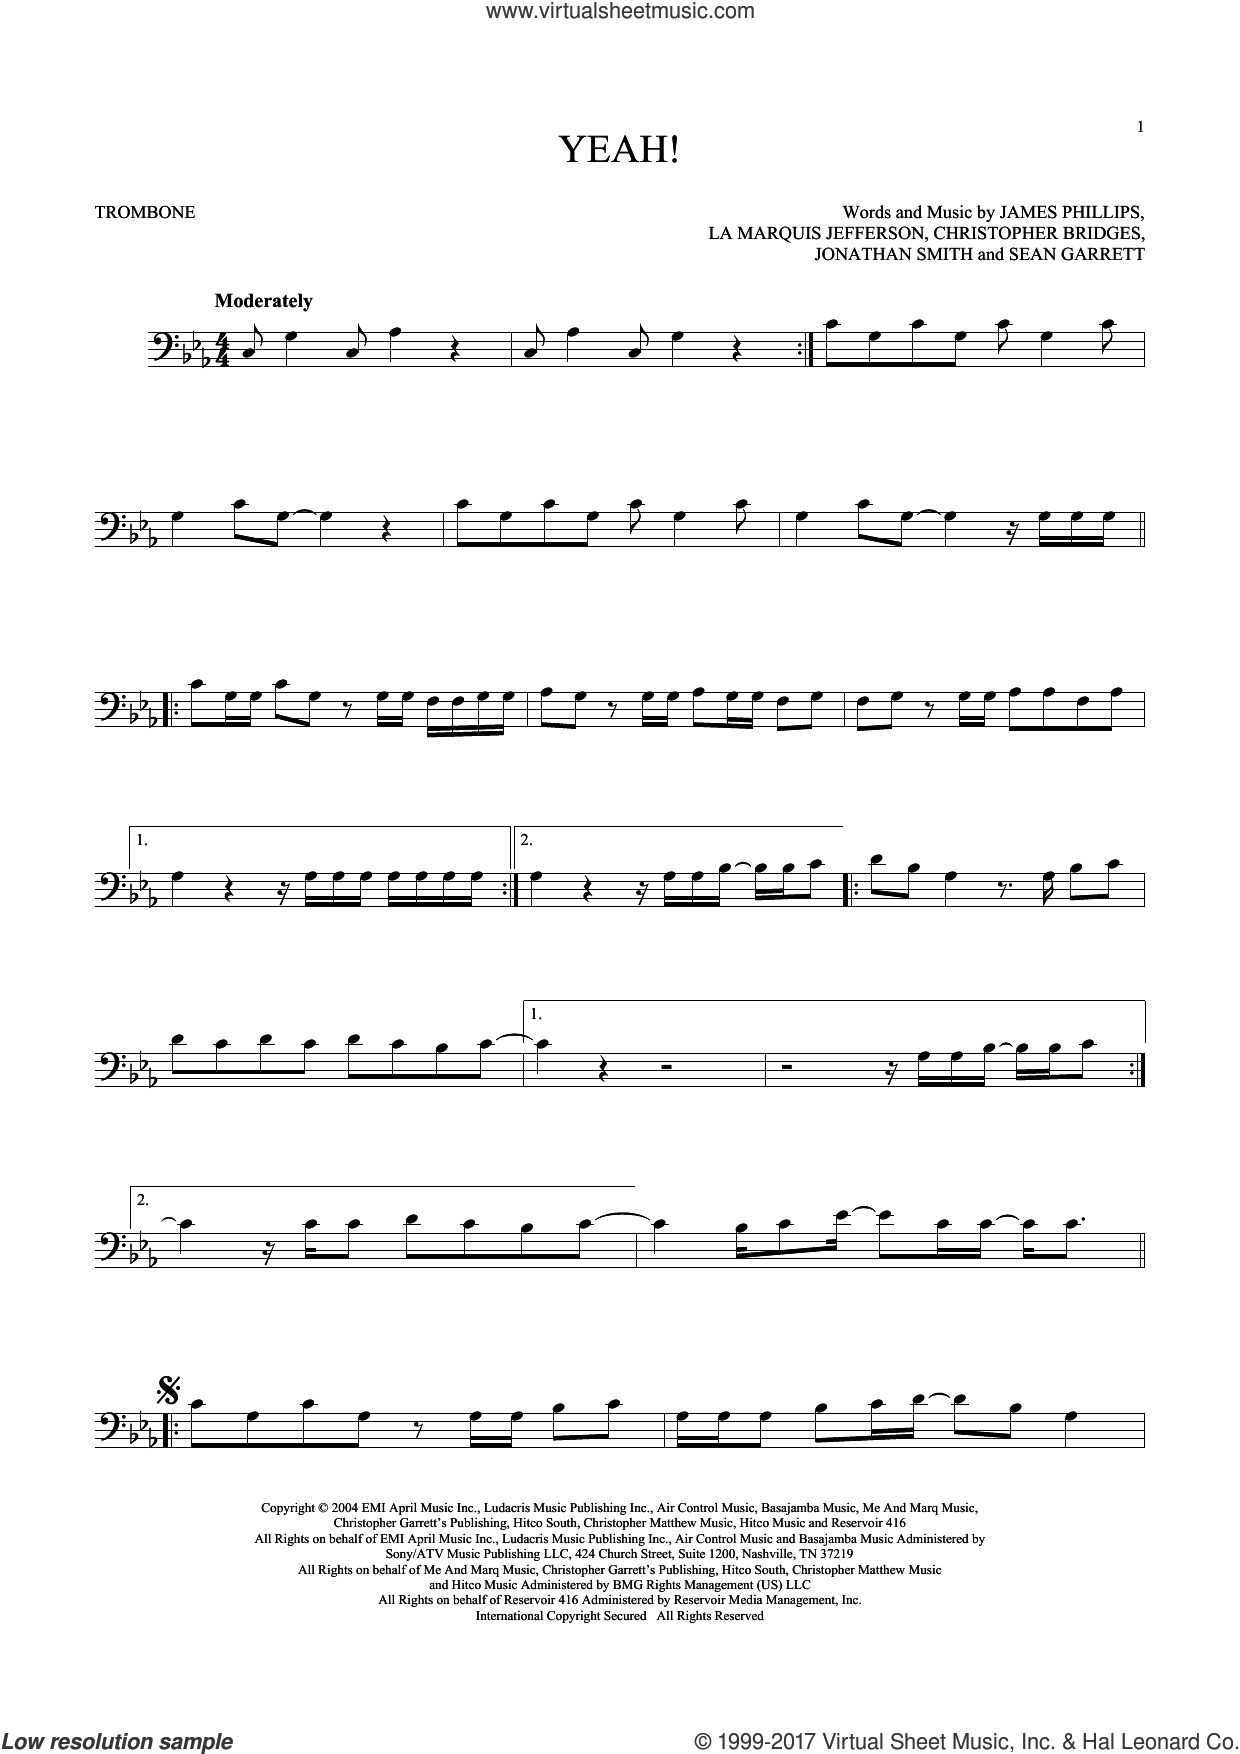 Yeah! sheet music for trombone solo by Usher featuring Lil Jon & Ludacris, Christopher Bridges, James Phillips, Jonathan Smith, La Marquis Jefferson, Laurence Smith and Sean Garrett, intermediate skill level